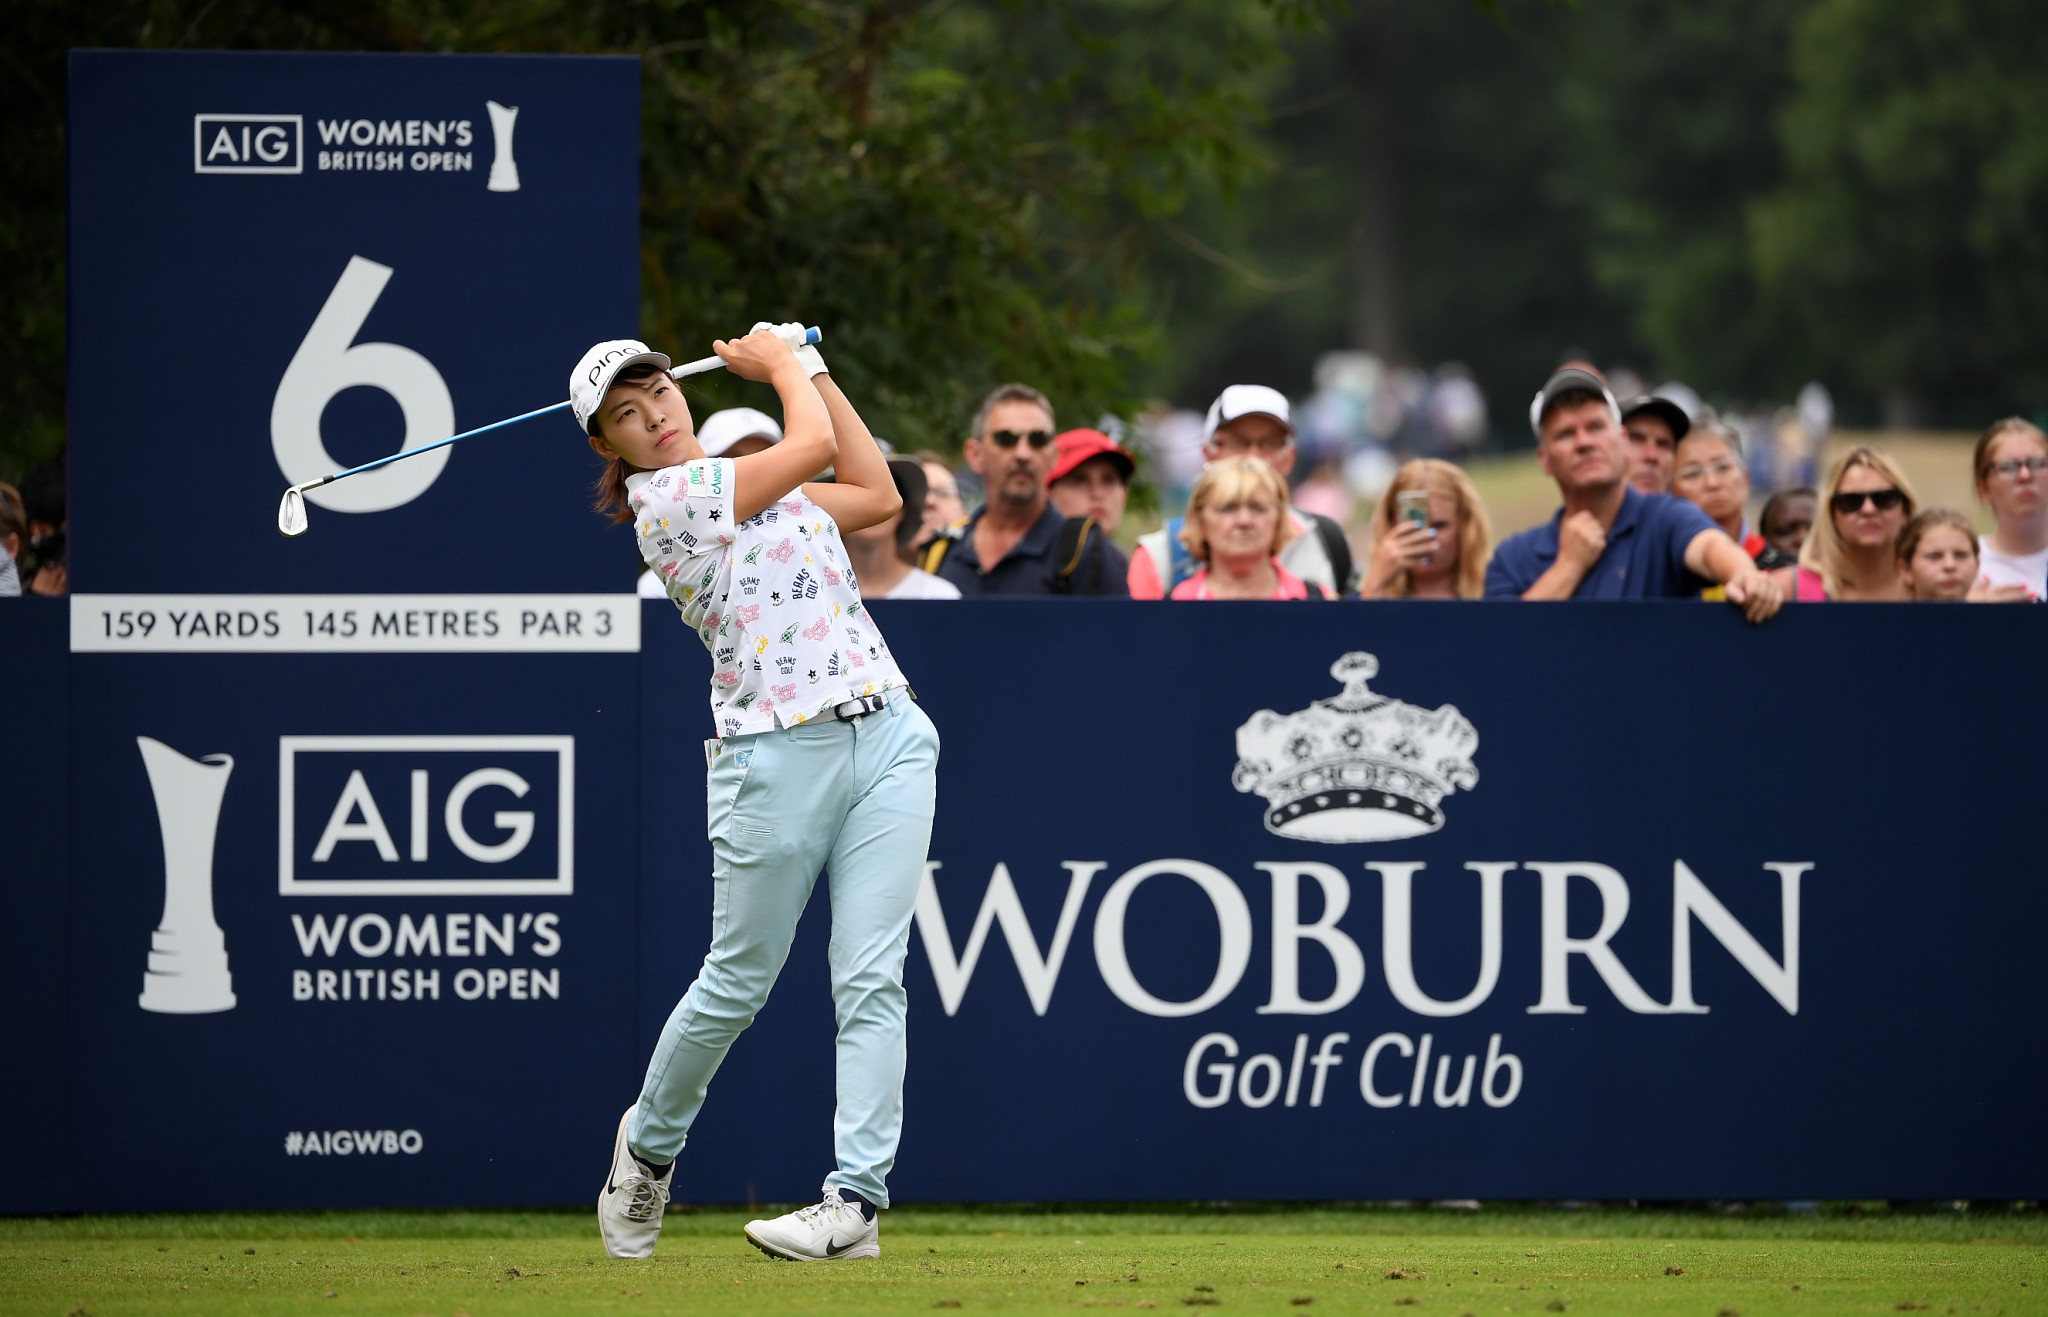 Women's British Open to be played without spectators in August